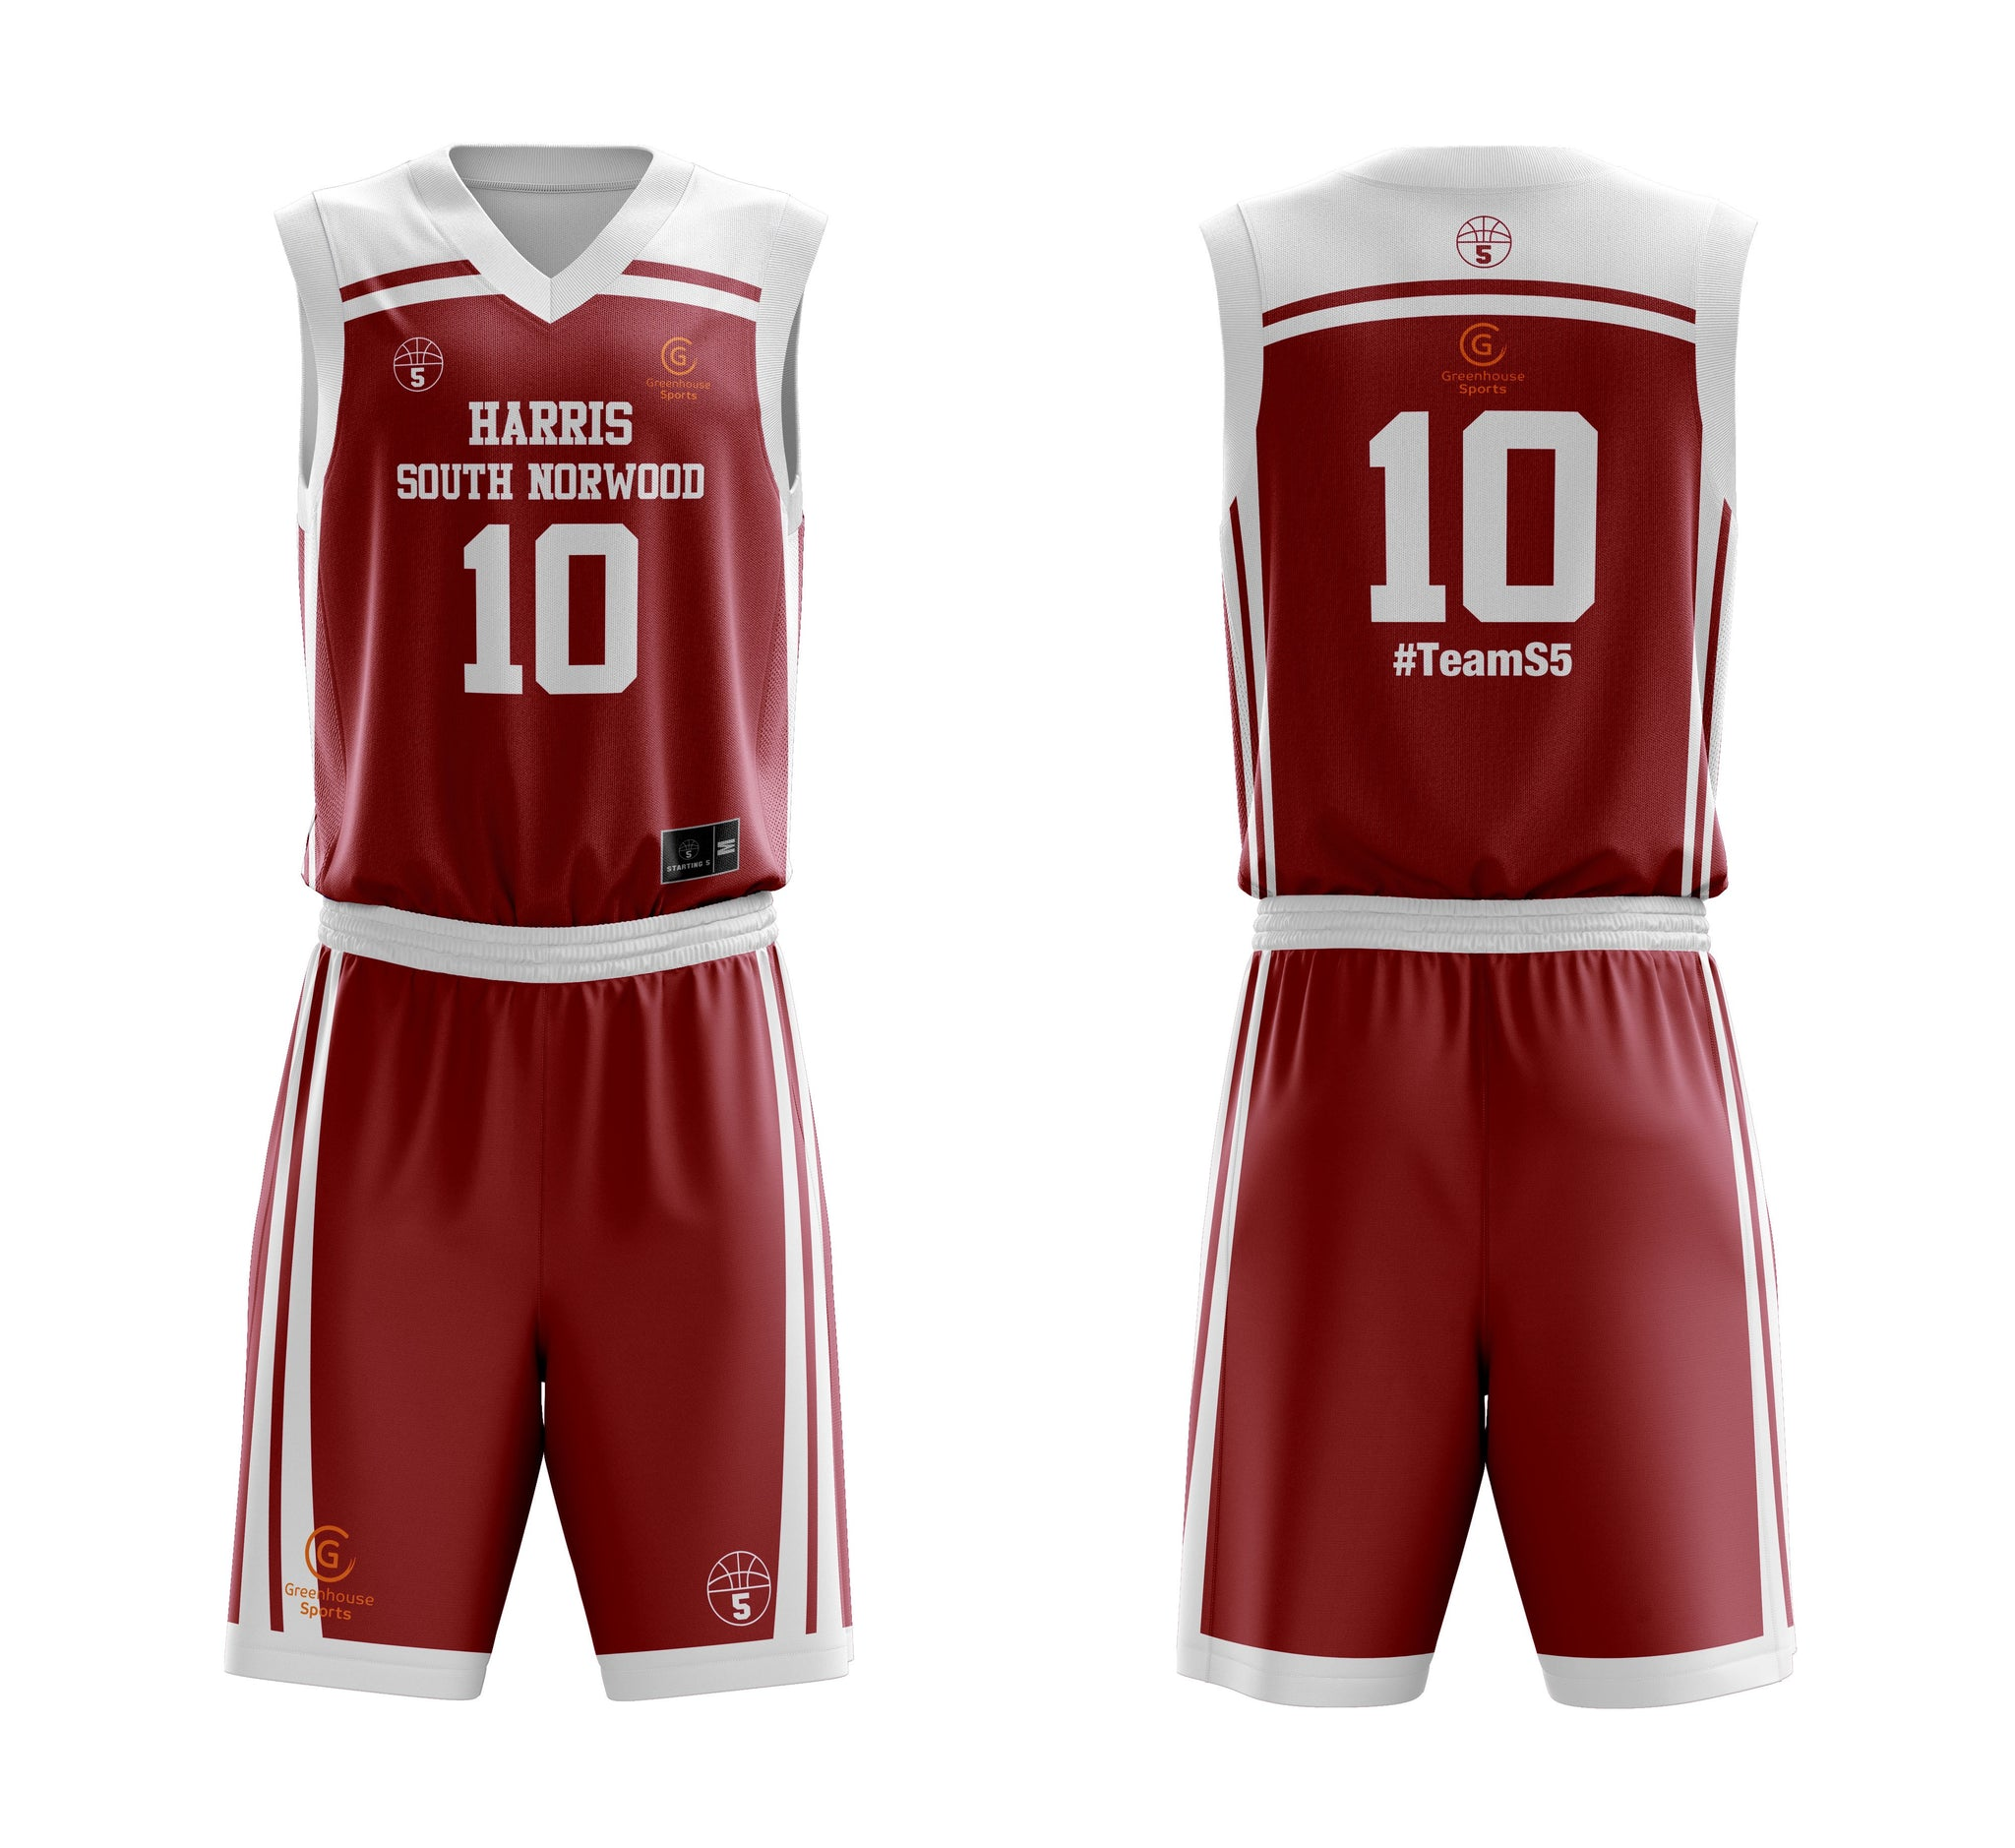 STARTING 5 Sublimated Basketball Kit Single-Sided Example 5